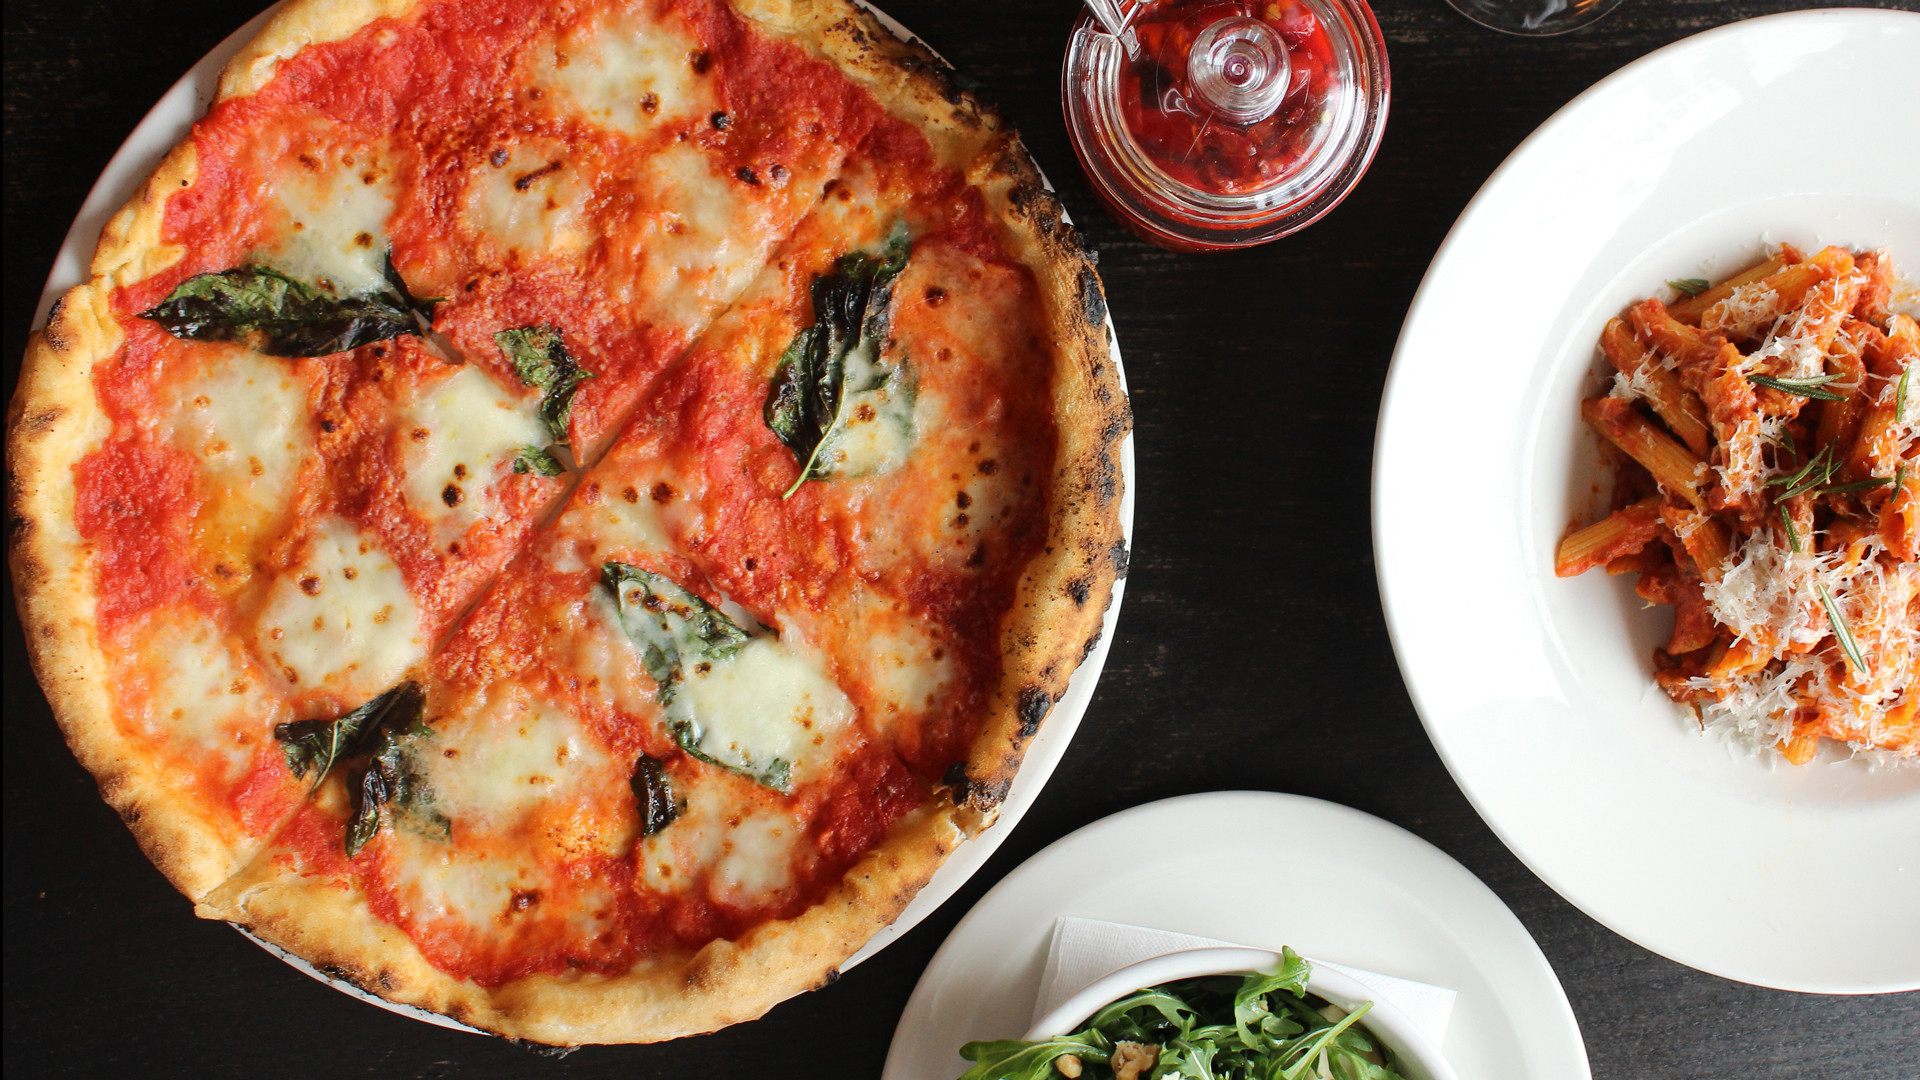 The best pizza in Toronto | A Margherita pizza and other Italian dishes at Pizzeria Libretto